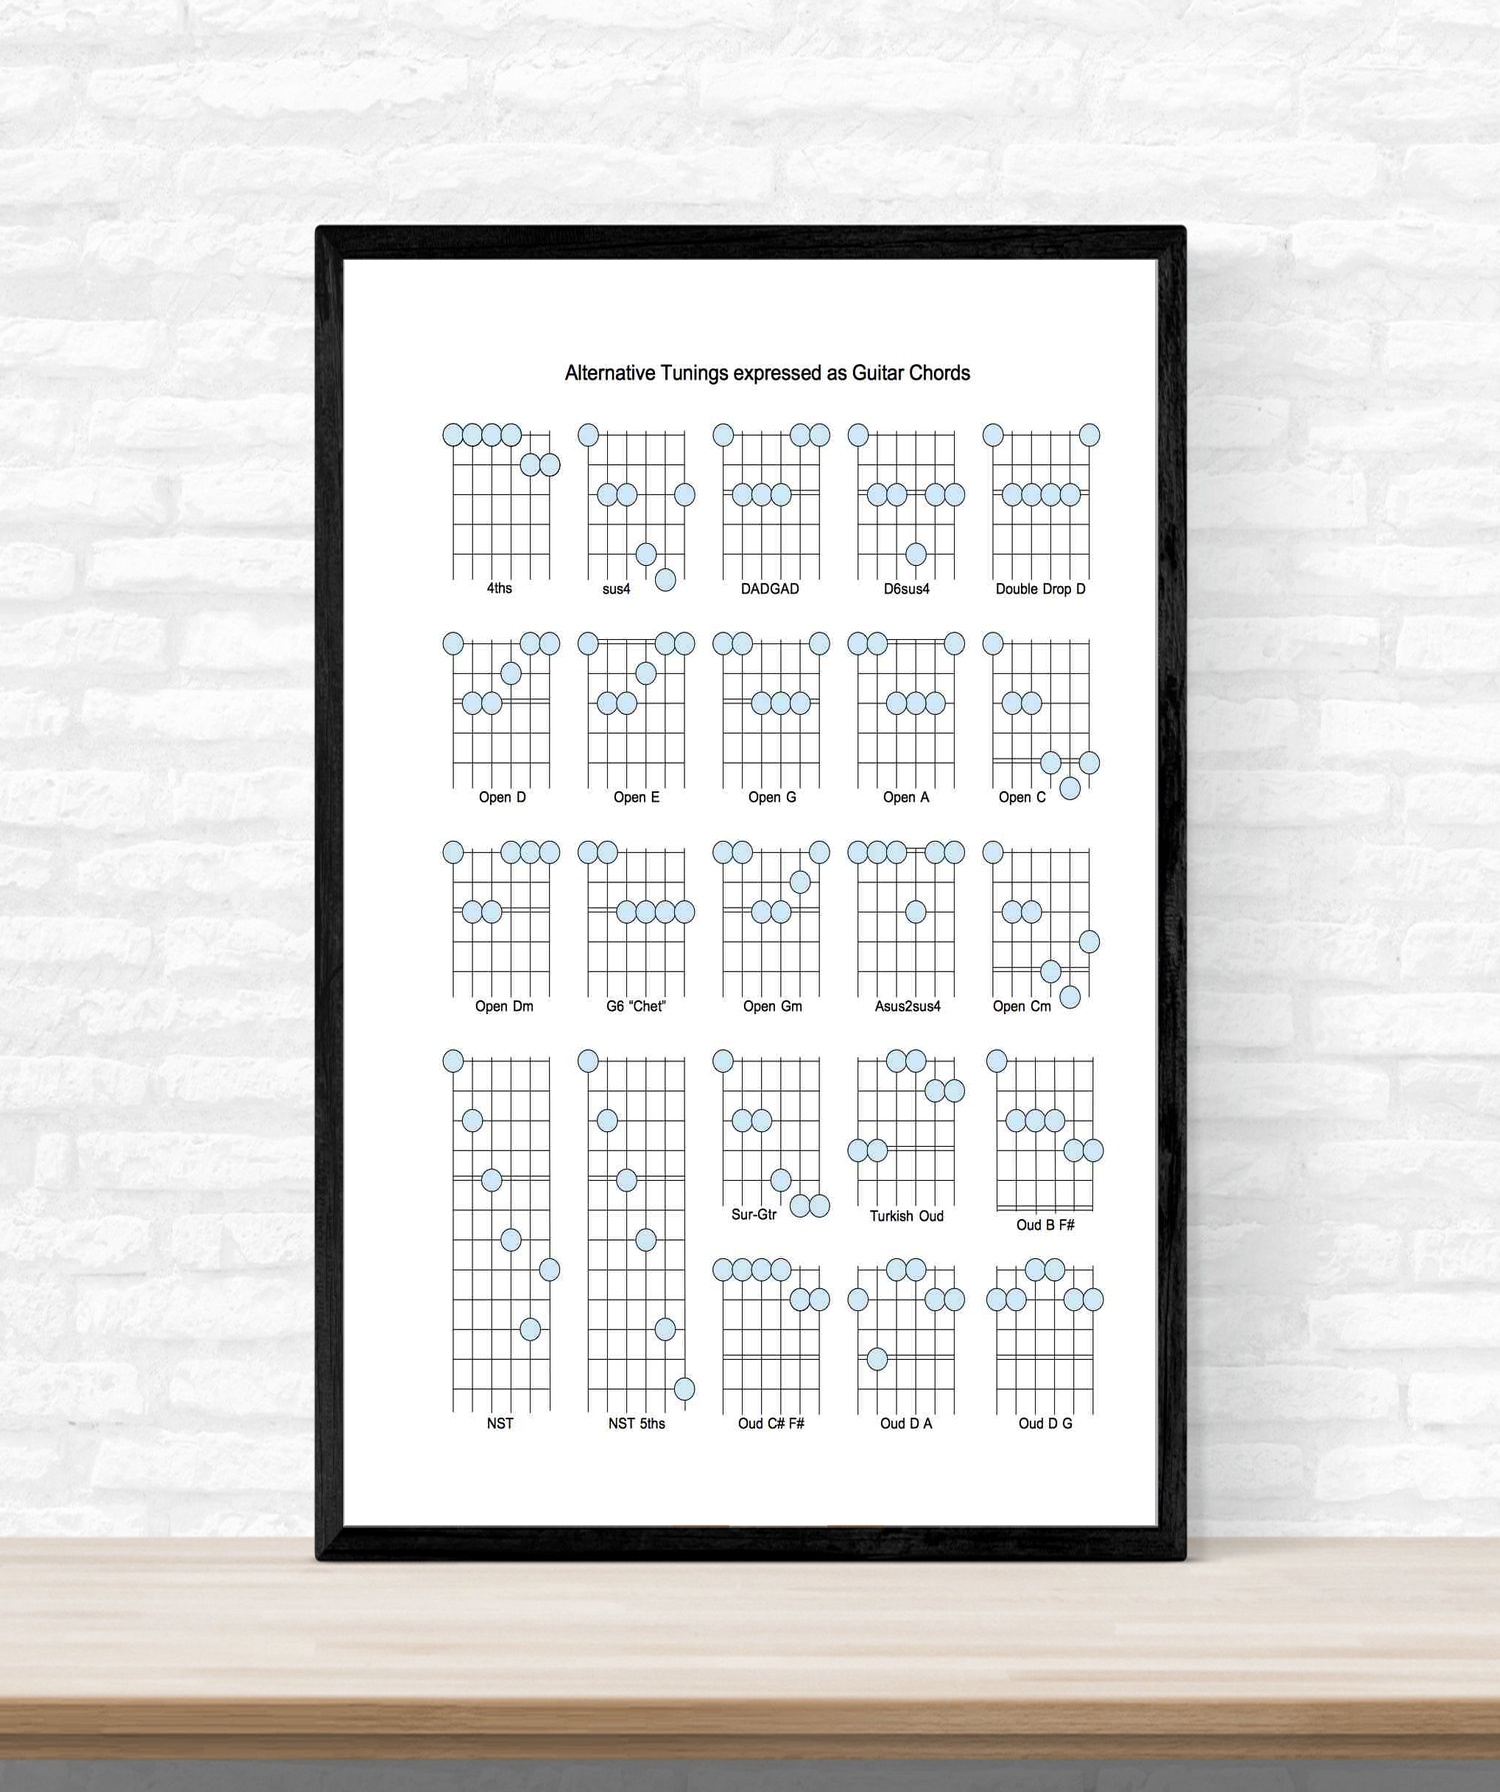 Guitar Chords Chart Us 69 Guitar Chord Chart Cotton Silk Art Print Poster Home Decor Picture No Frame 12x18 24x36inch In Painting Calligraphy From Home Garden On